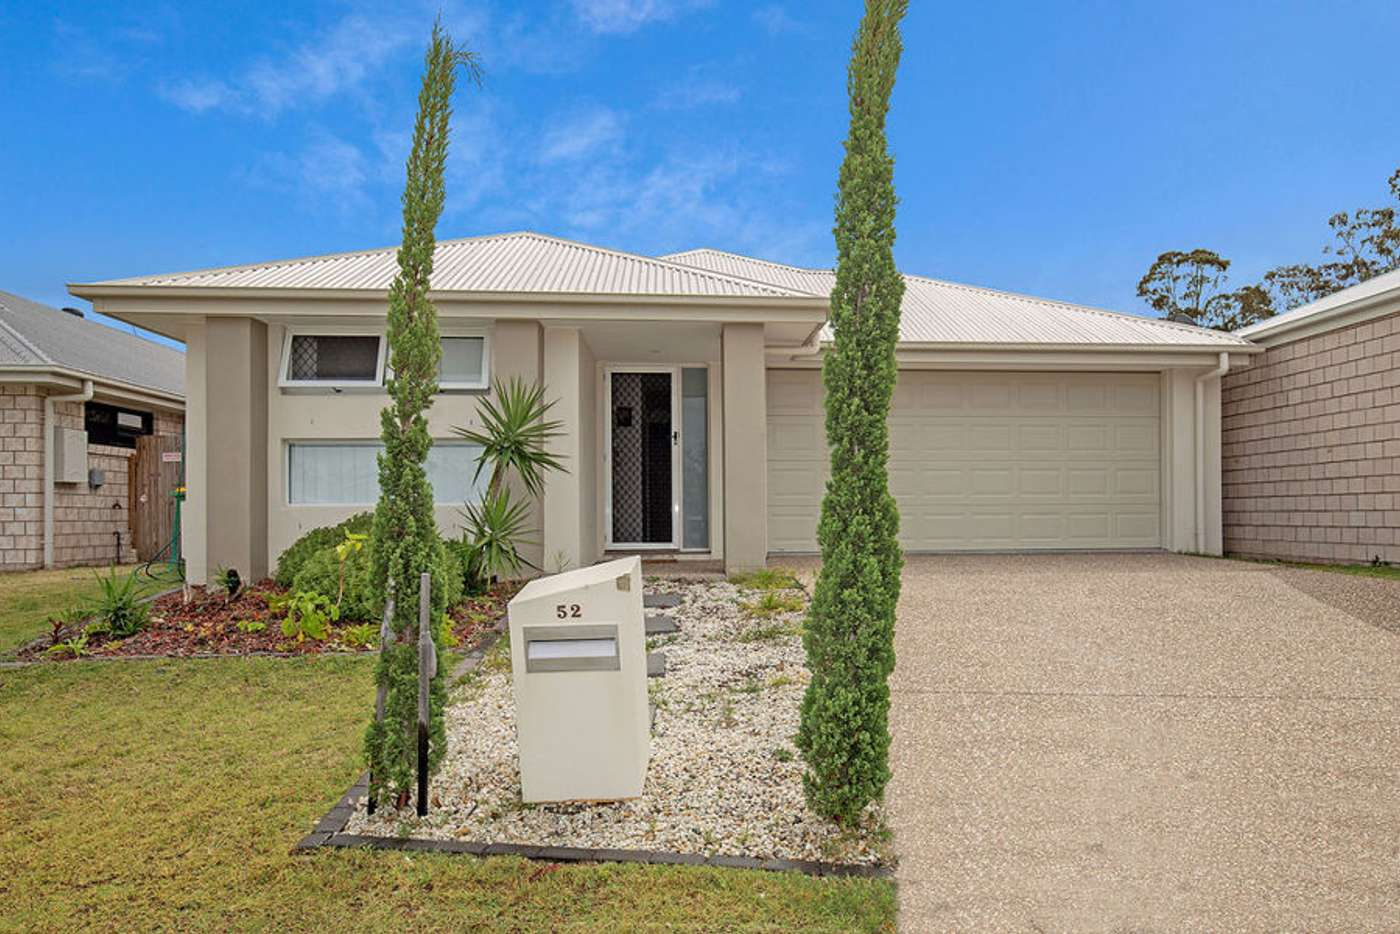 Main view of Homely house listing, 52 Dixon Drive, Pimpama QLD 4209